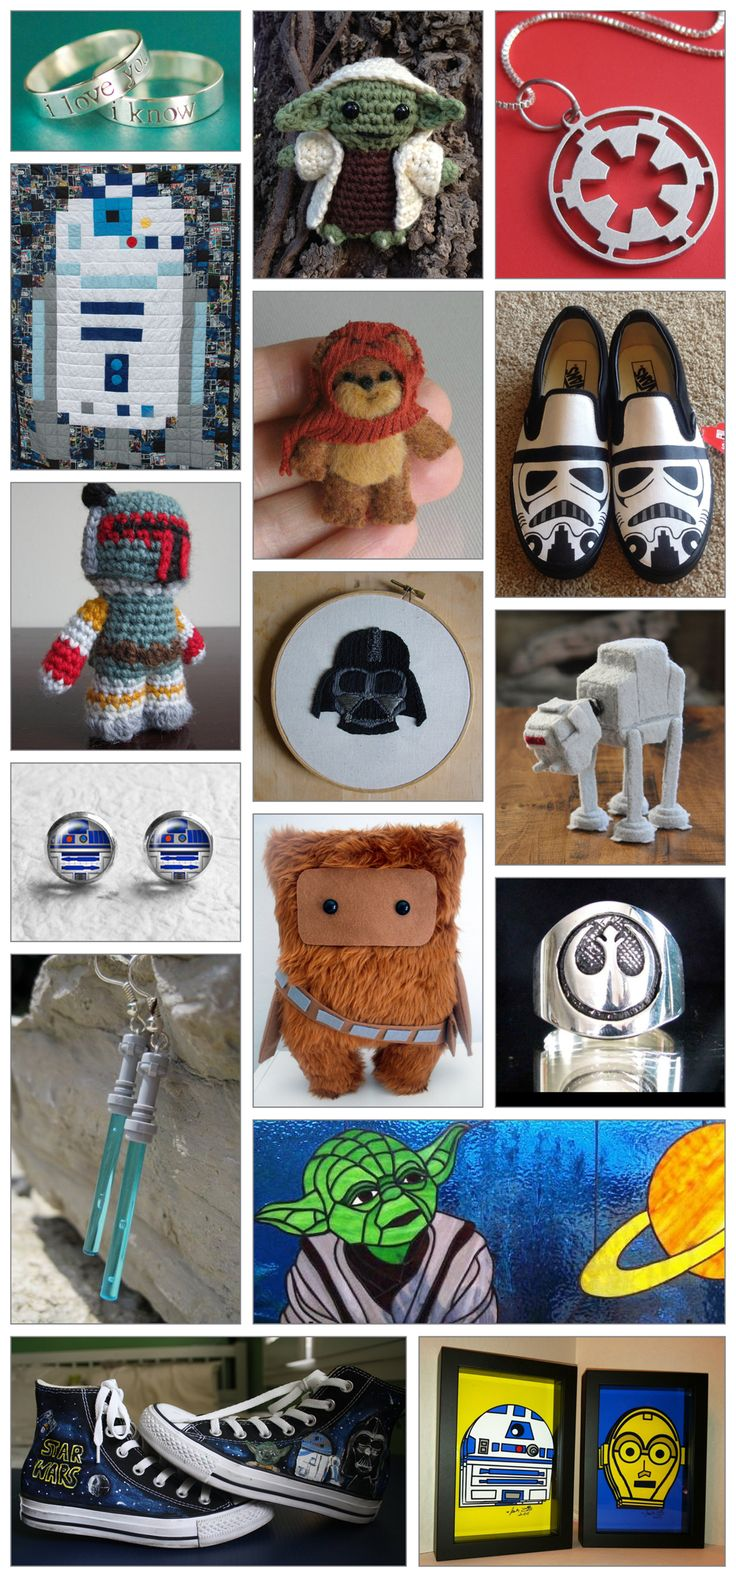 May the Fourth Be With You! (Star Wars crafts for May 4th)